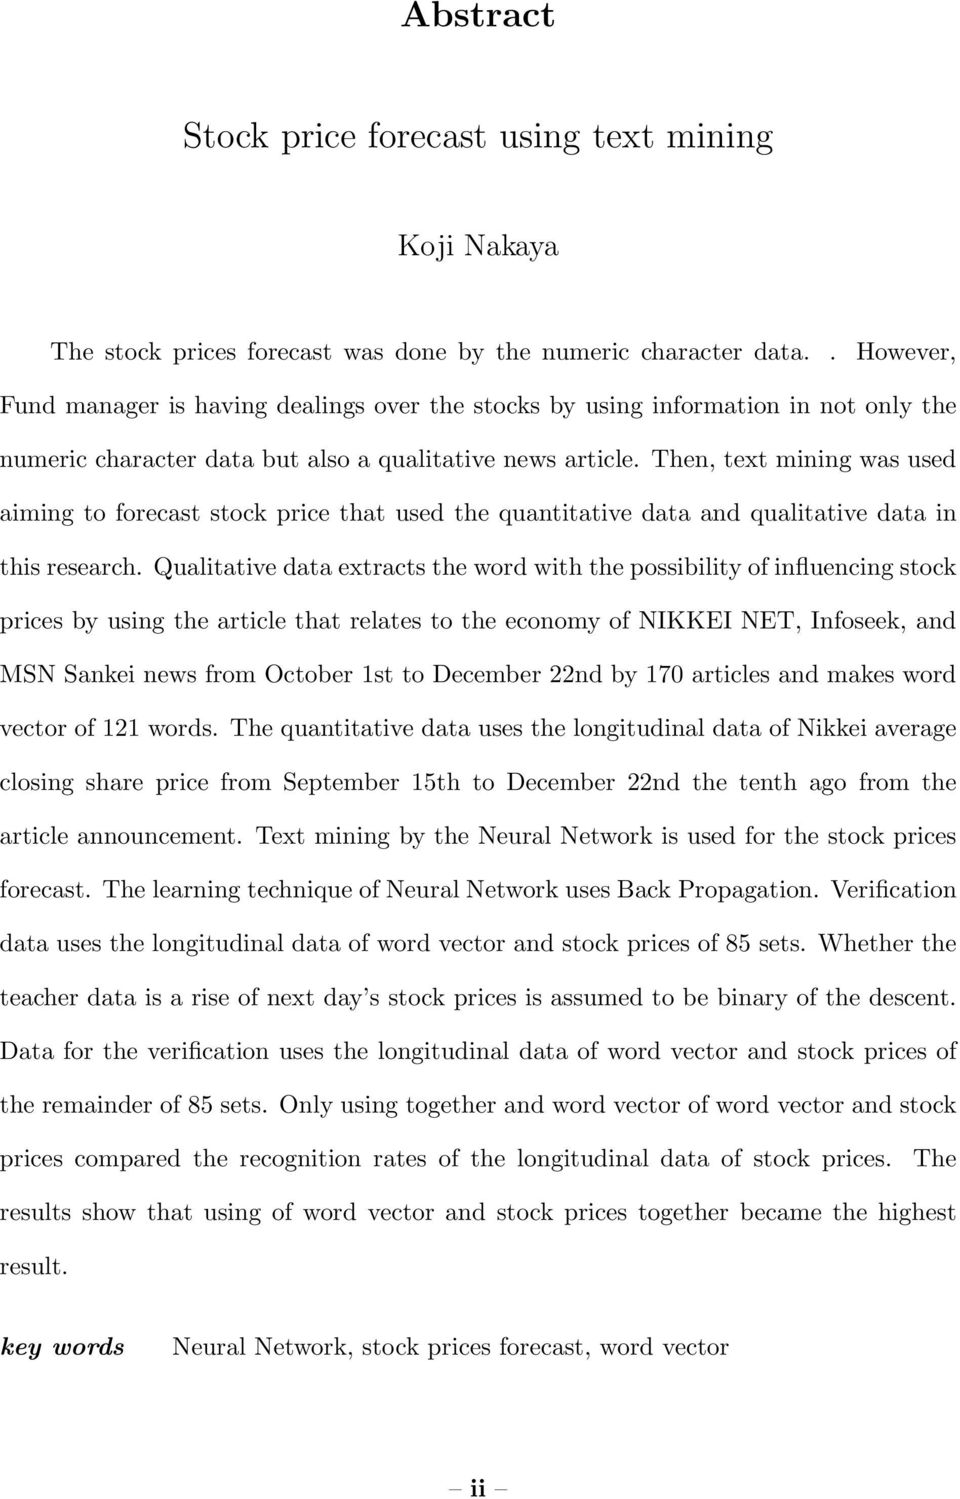 Then, text mining was used aiming to forecast stock price that used the quantitative data and qualitative data in this research.